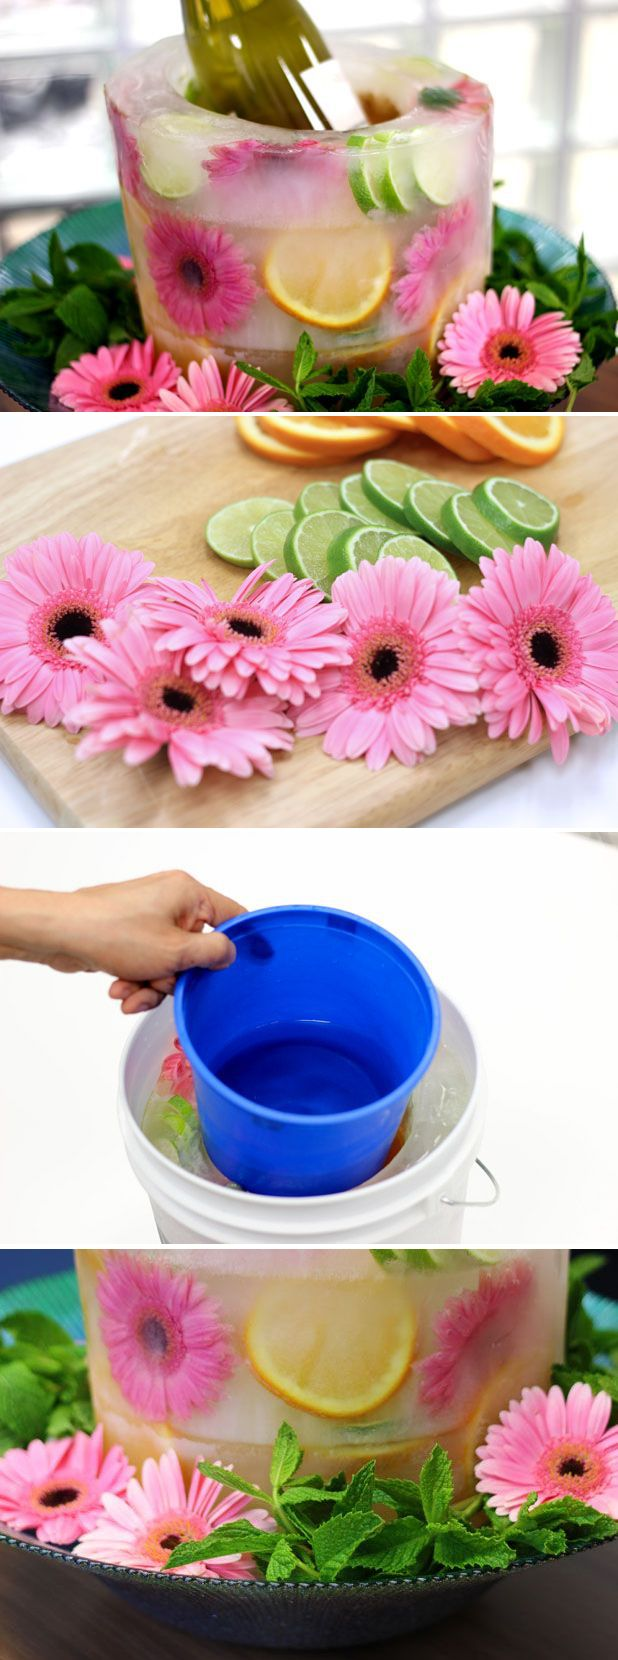 How cool is this! A floral ice bucket or centerpiece with fresh flowers and frui...